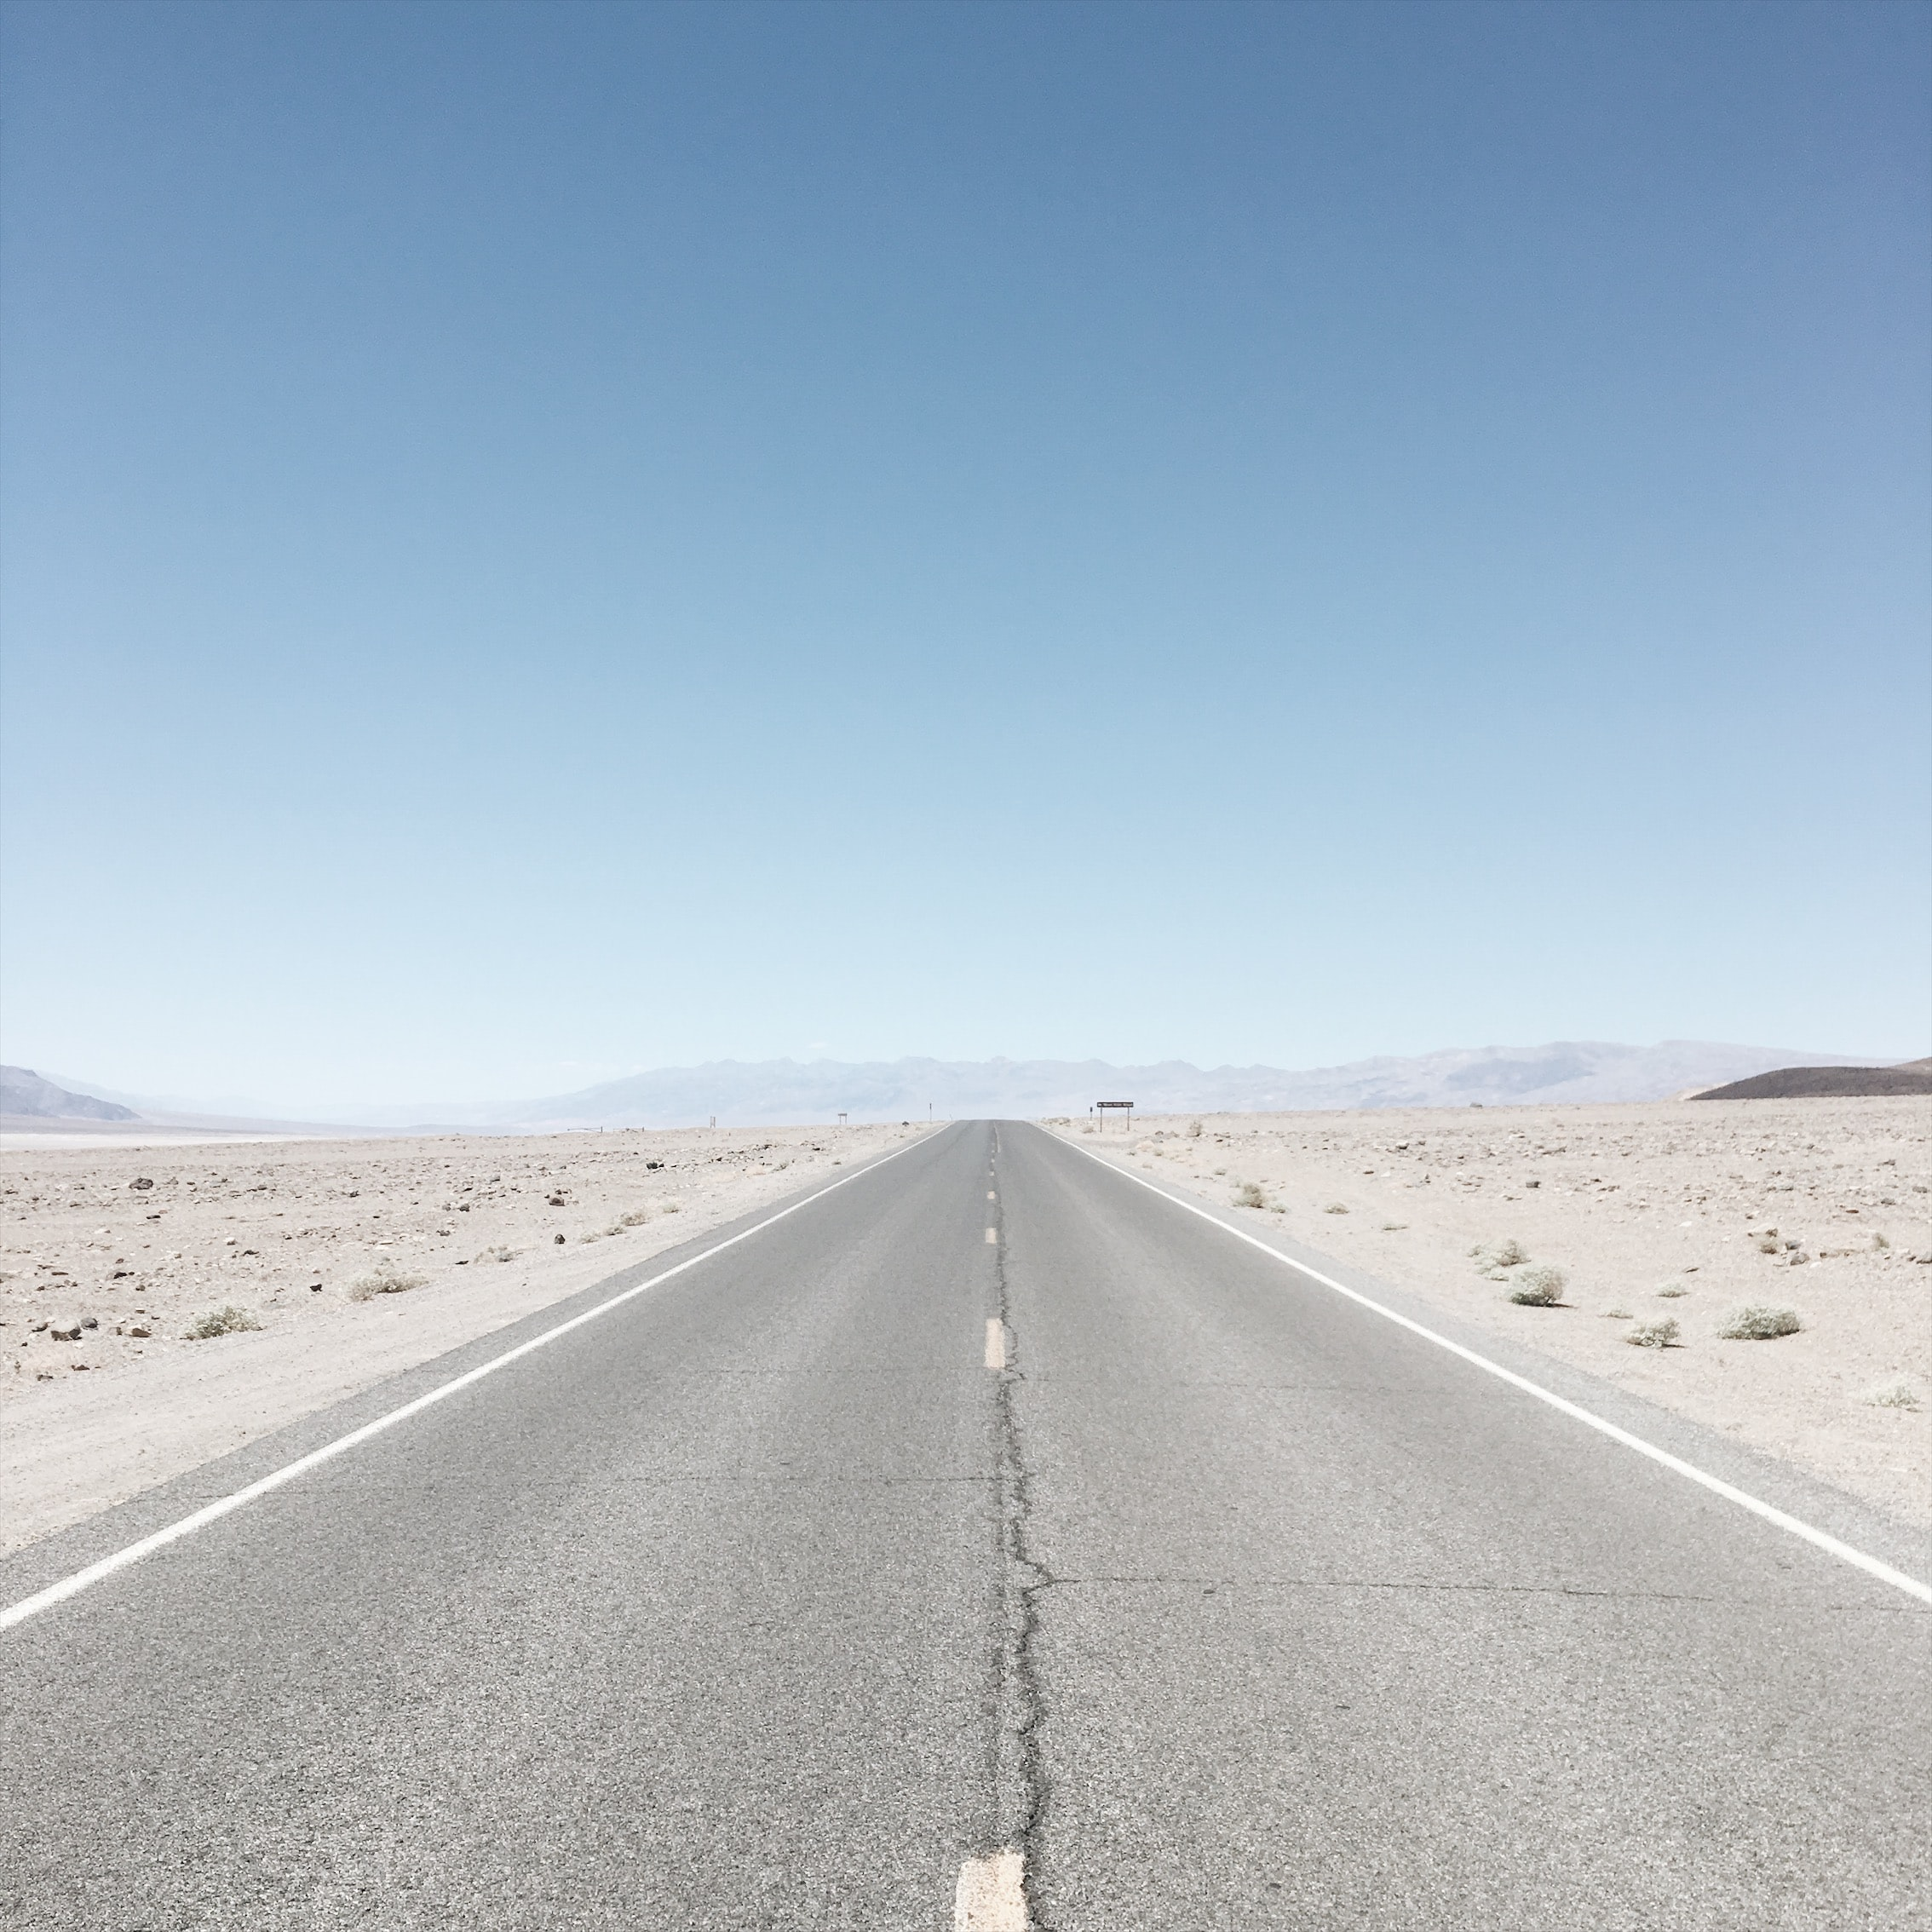 empty highway during daytime